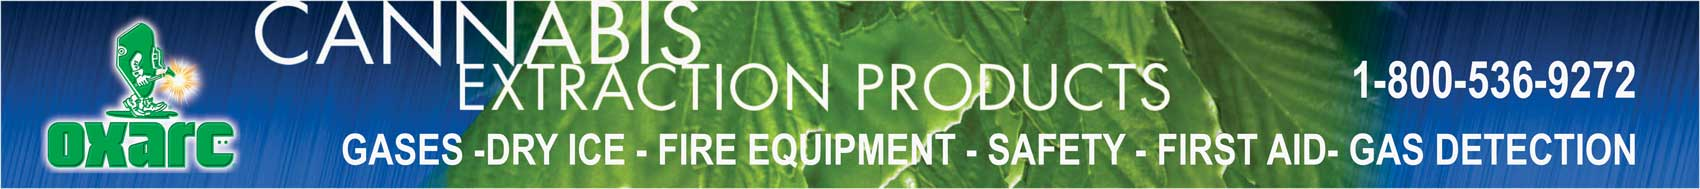 Cannabis Extraction Products